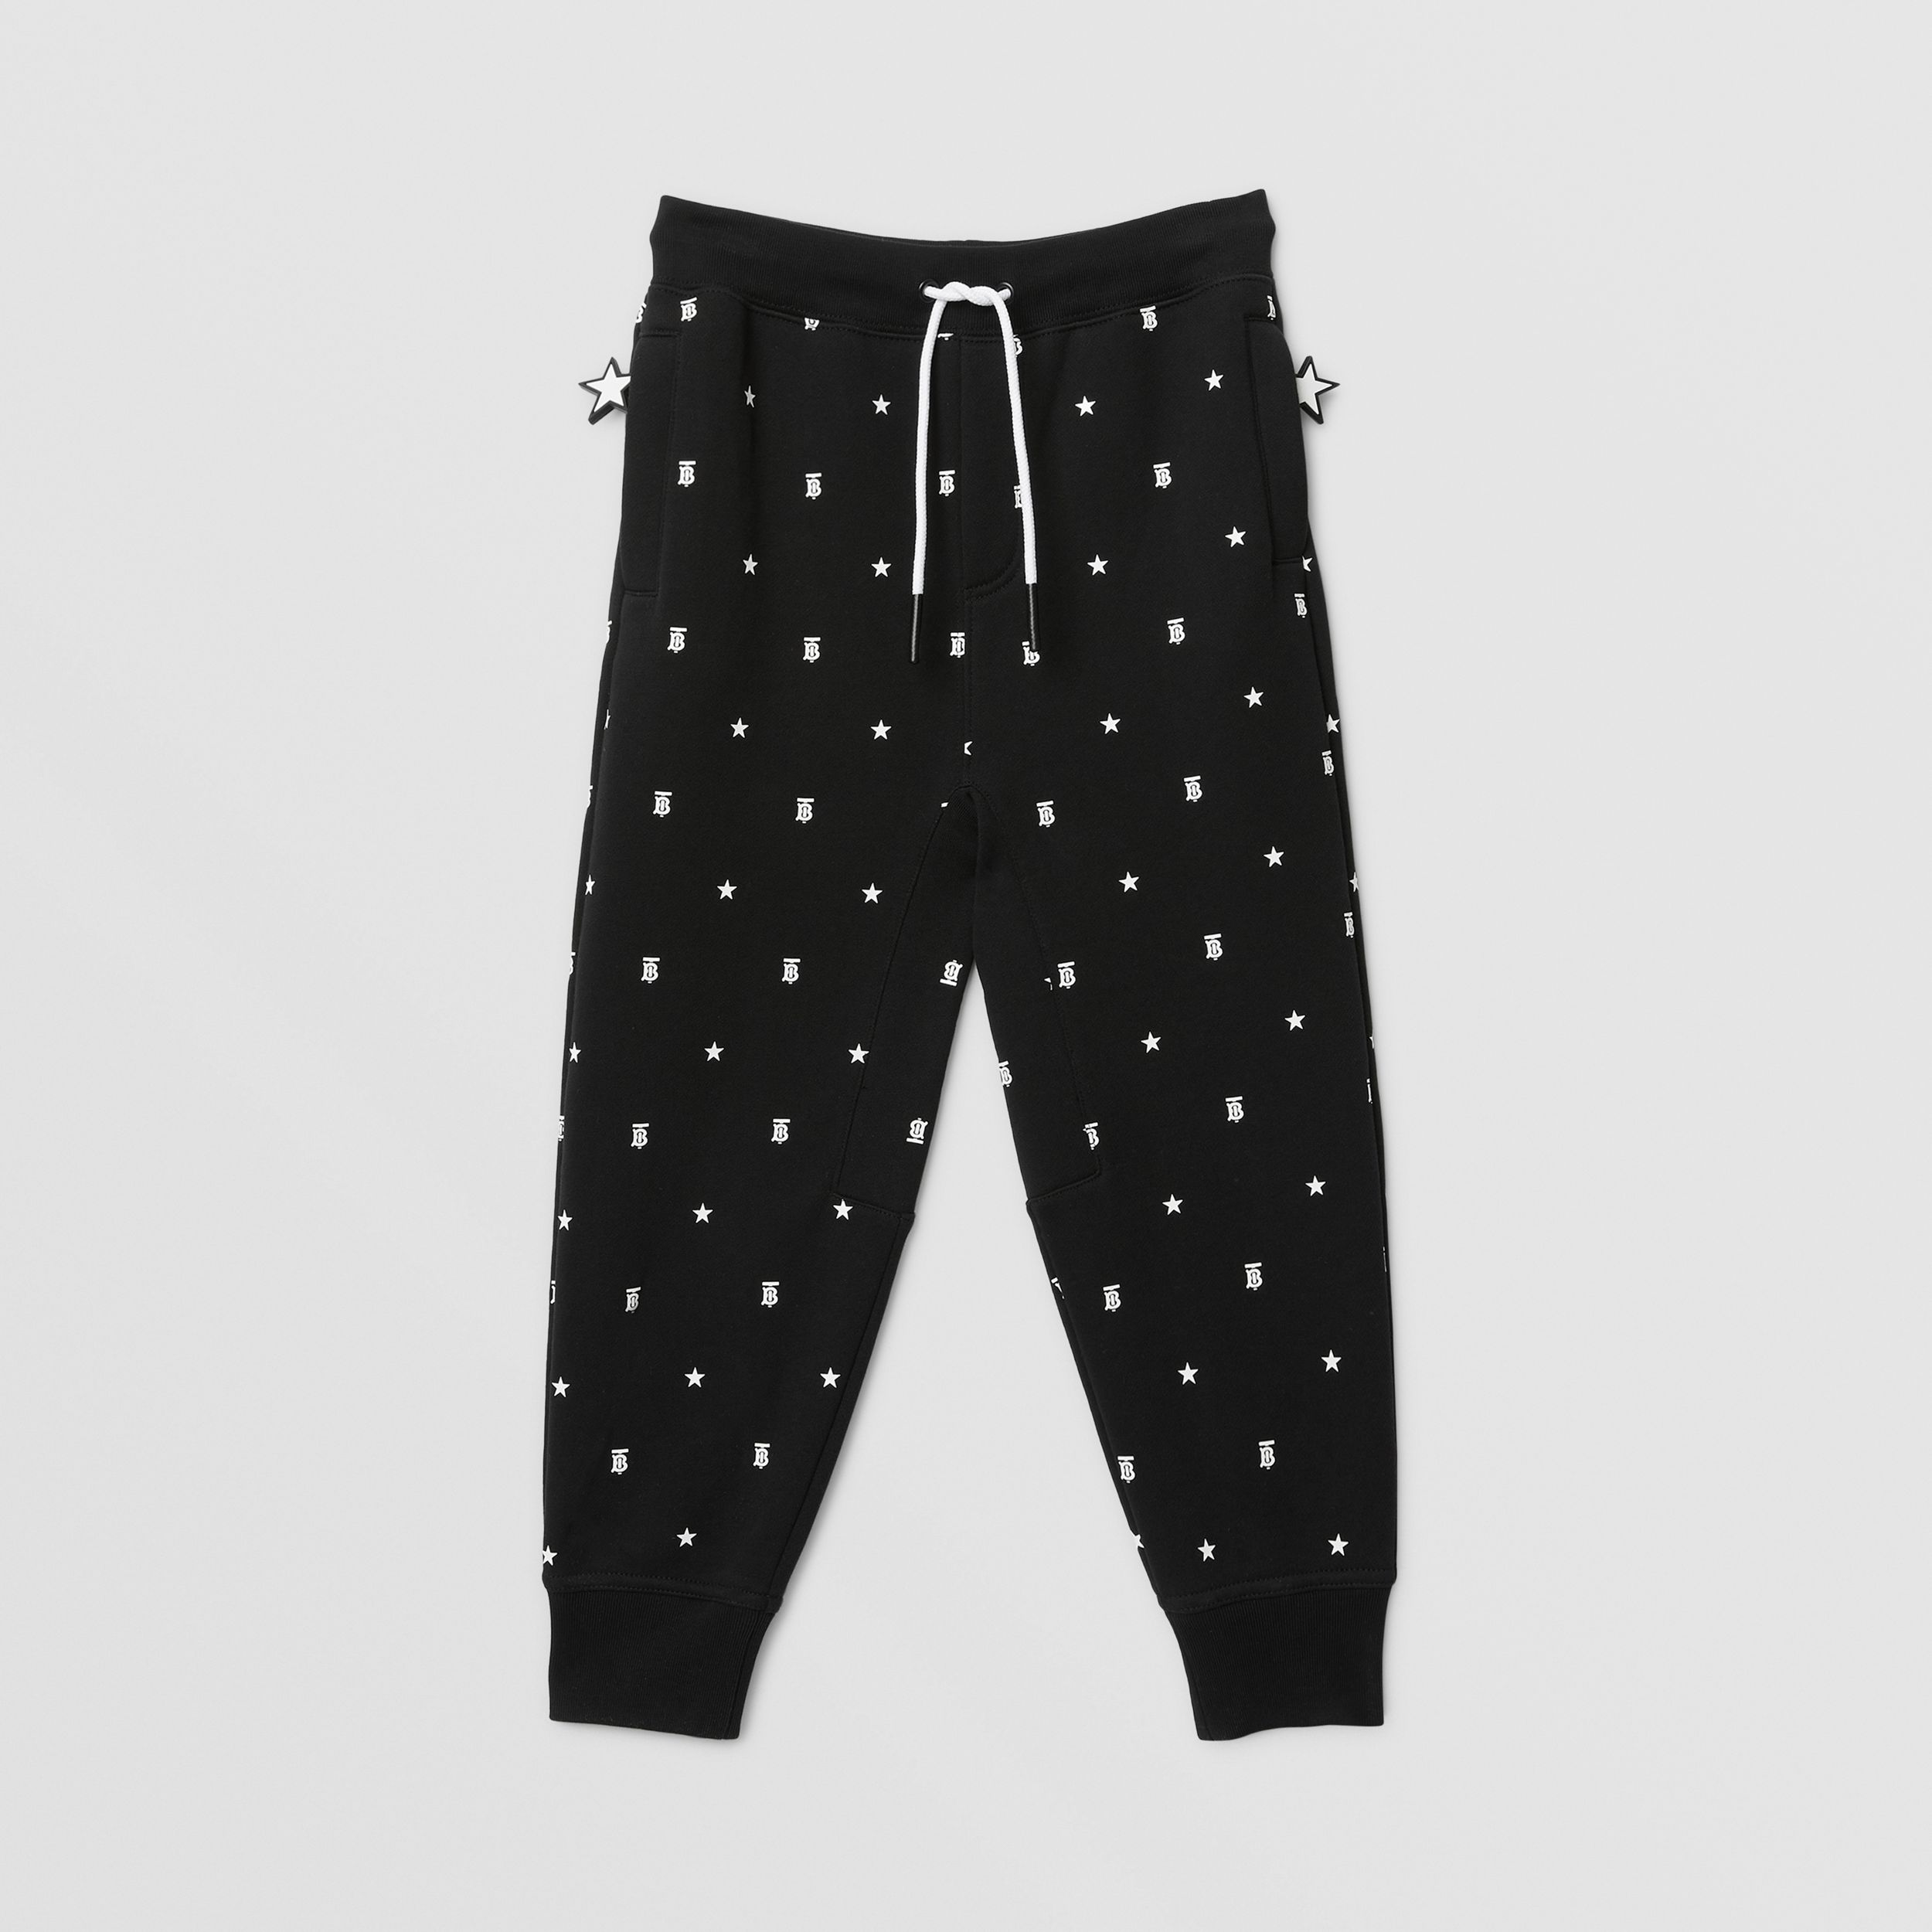 Star and Monogram Motif Cotton Jogging Pants in Black | Burberry United Kingdom - 1